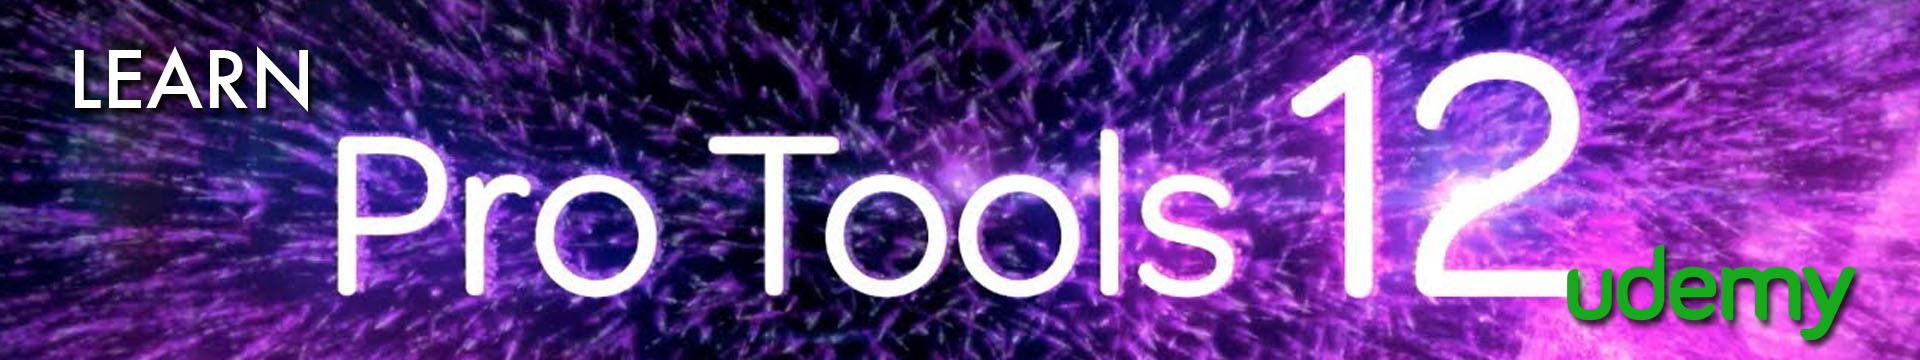 Udemy Pro Tools Banner